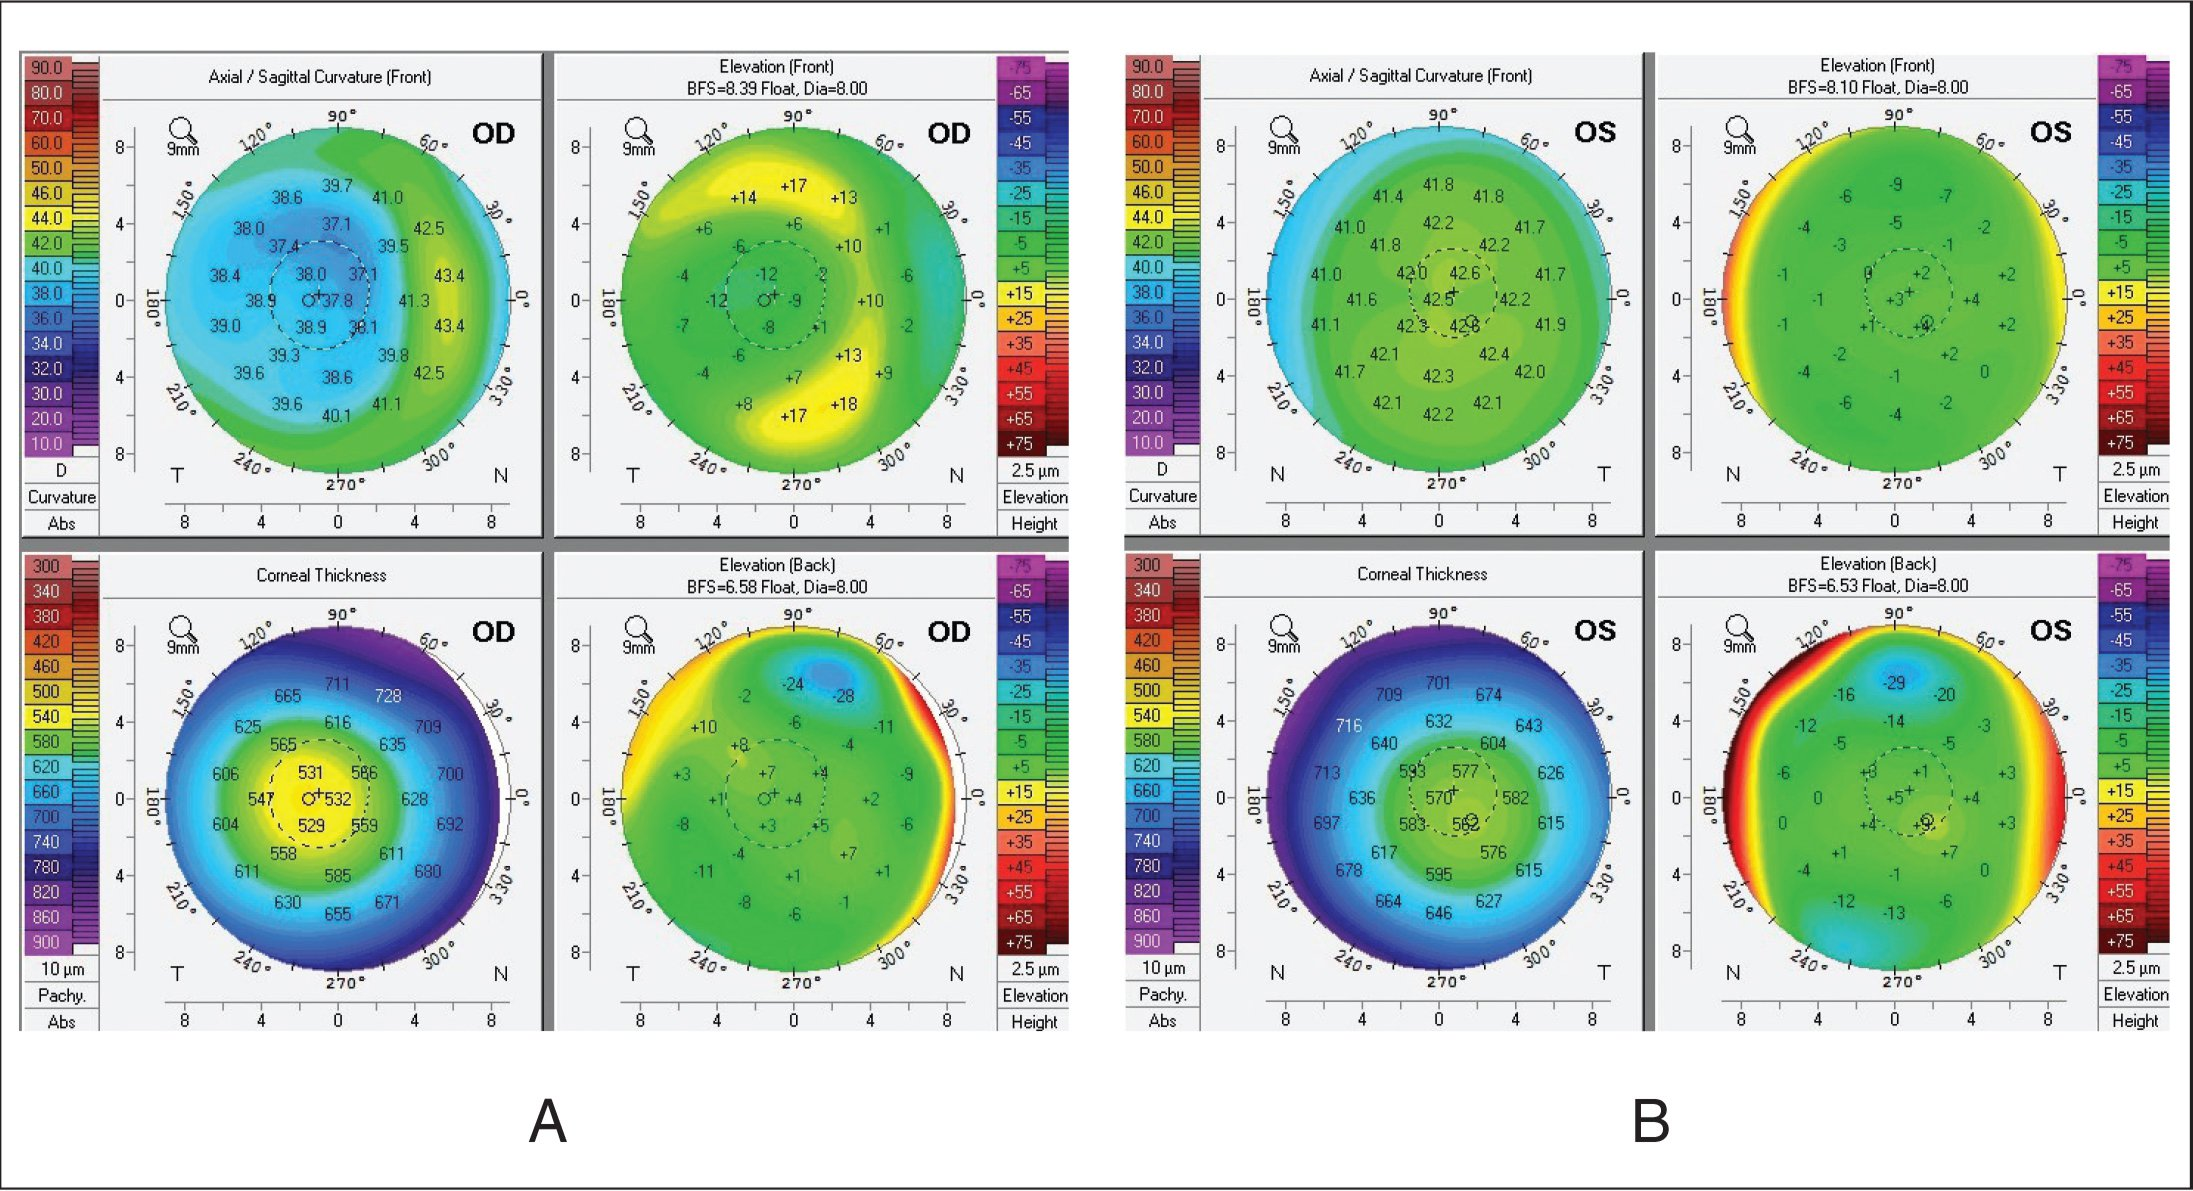 Pentacam (Oculus Optikgeräte, Wetzlar, Germany) results for case 1 at 16-year follow-up. There is slight temporal decentration of the ablation bed, symmetric between the left and right eye, and no evidence of ectasia.